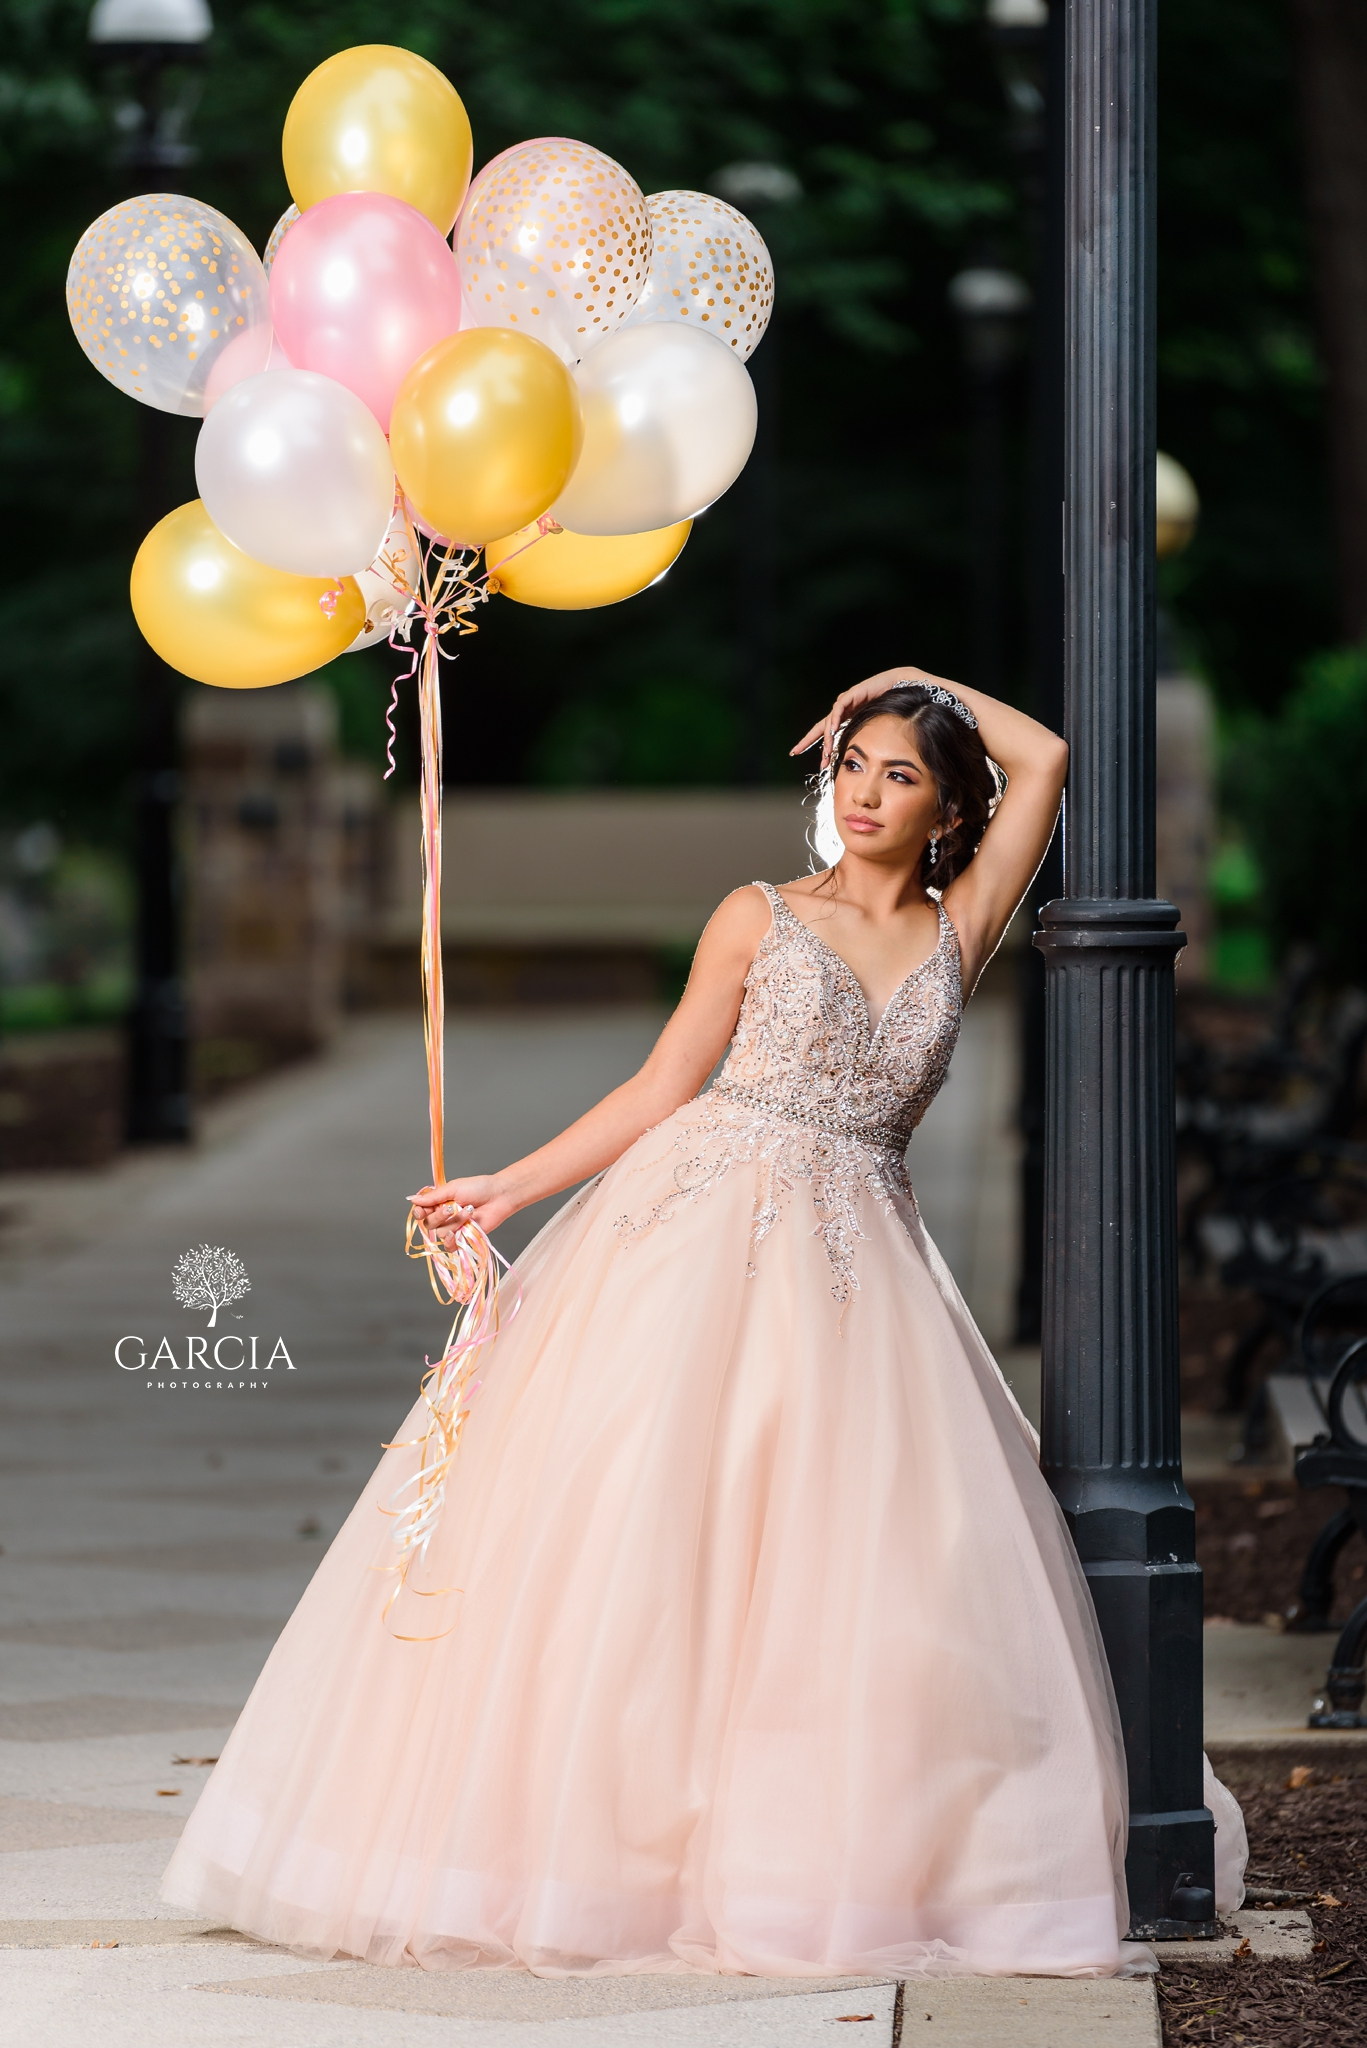 Nicole-Quince-Session-Garcia-Photography-4817.jpg